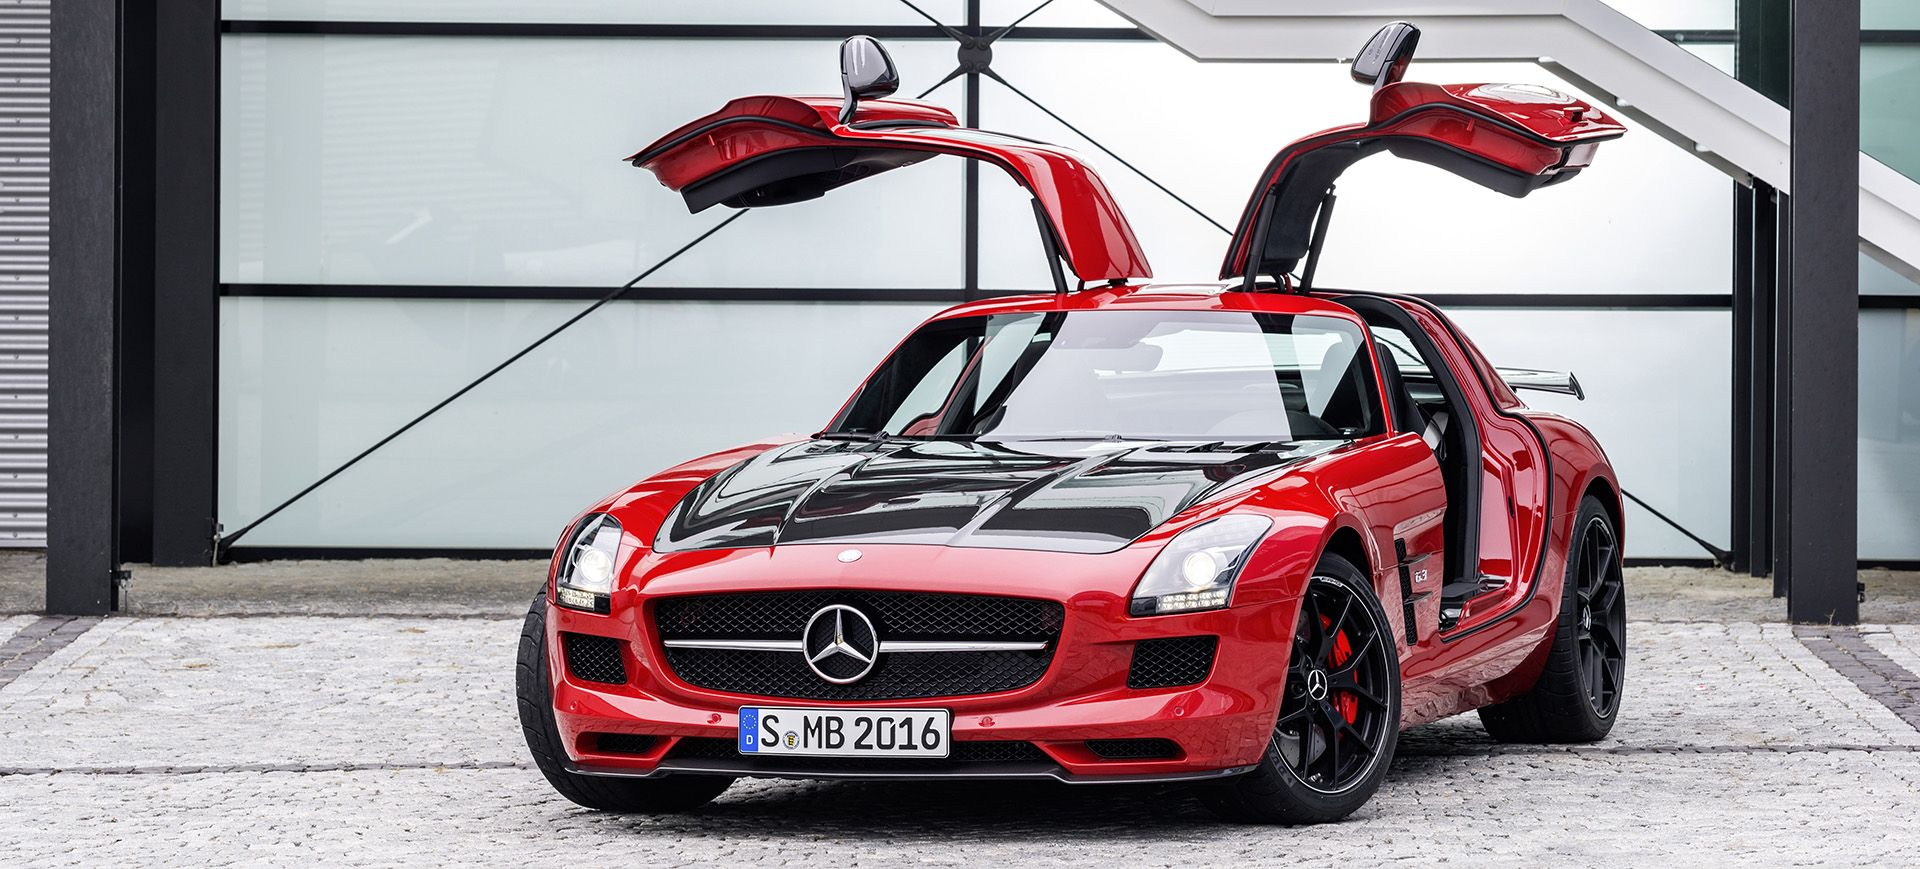 The Ten Most American Foreign Cars Mercedes sls amg gt